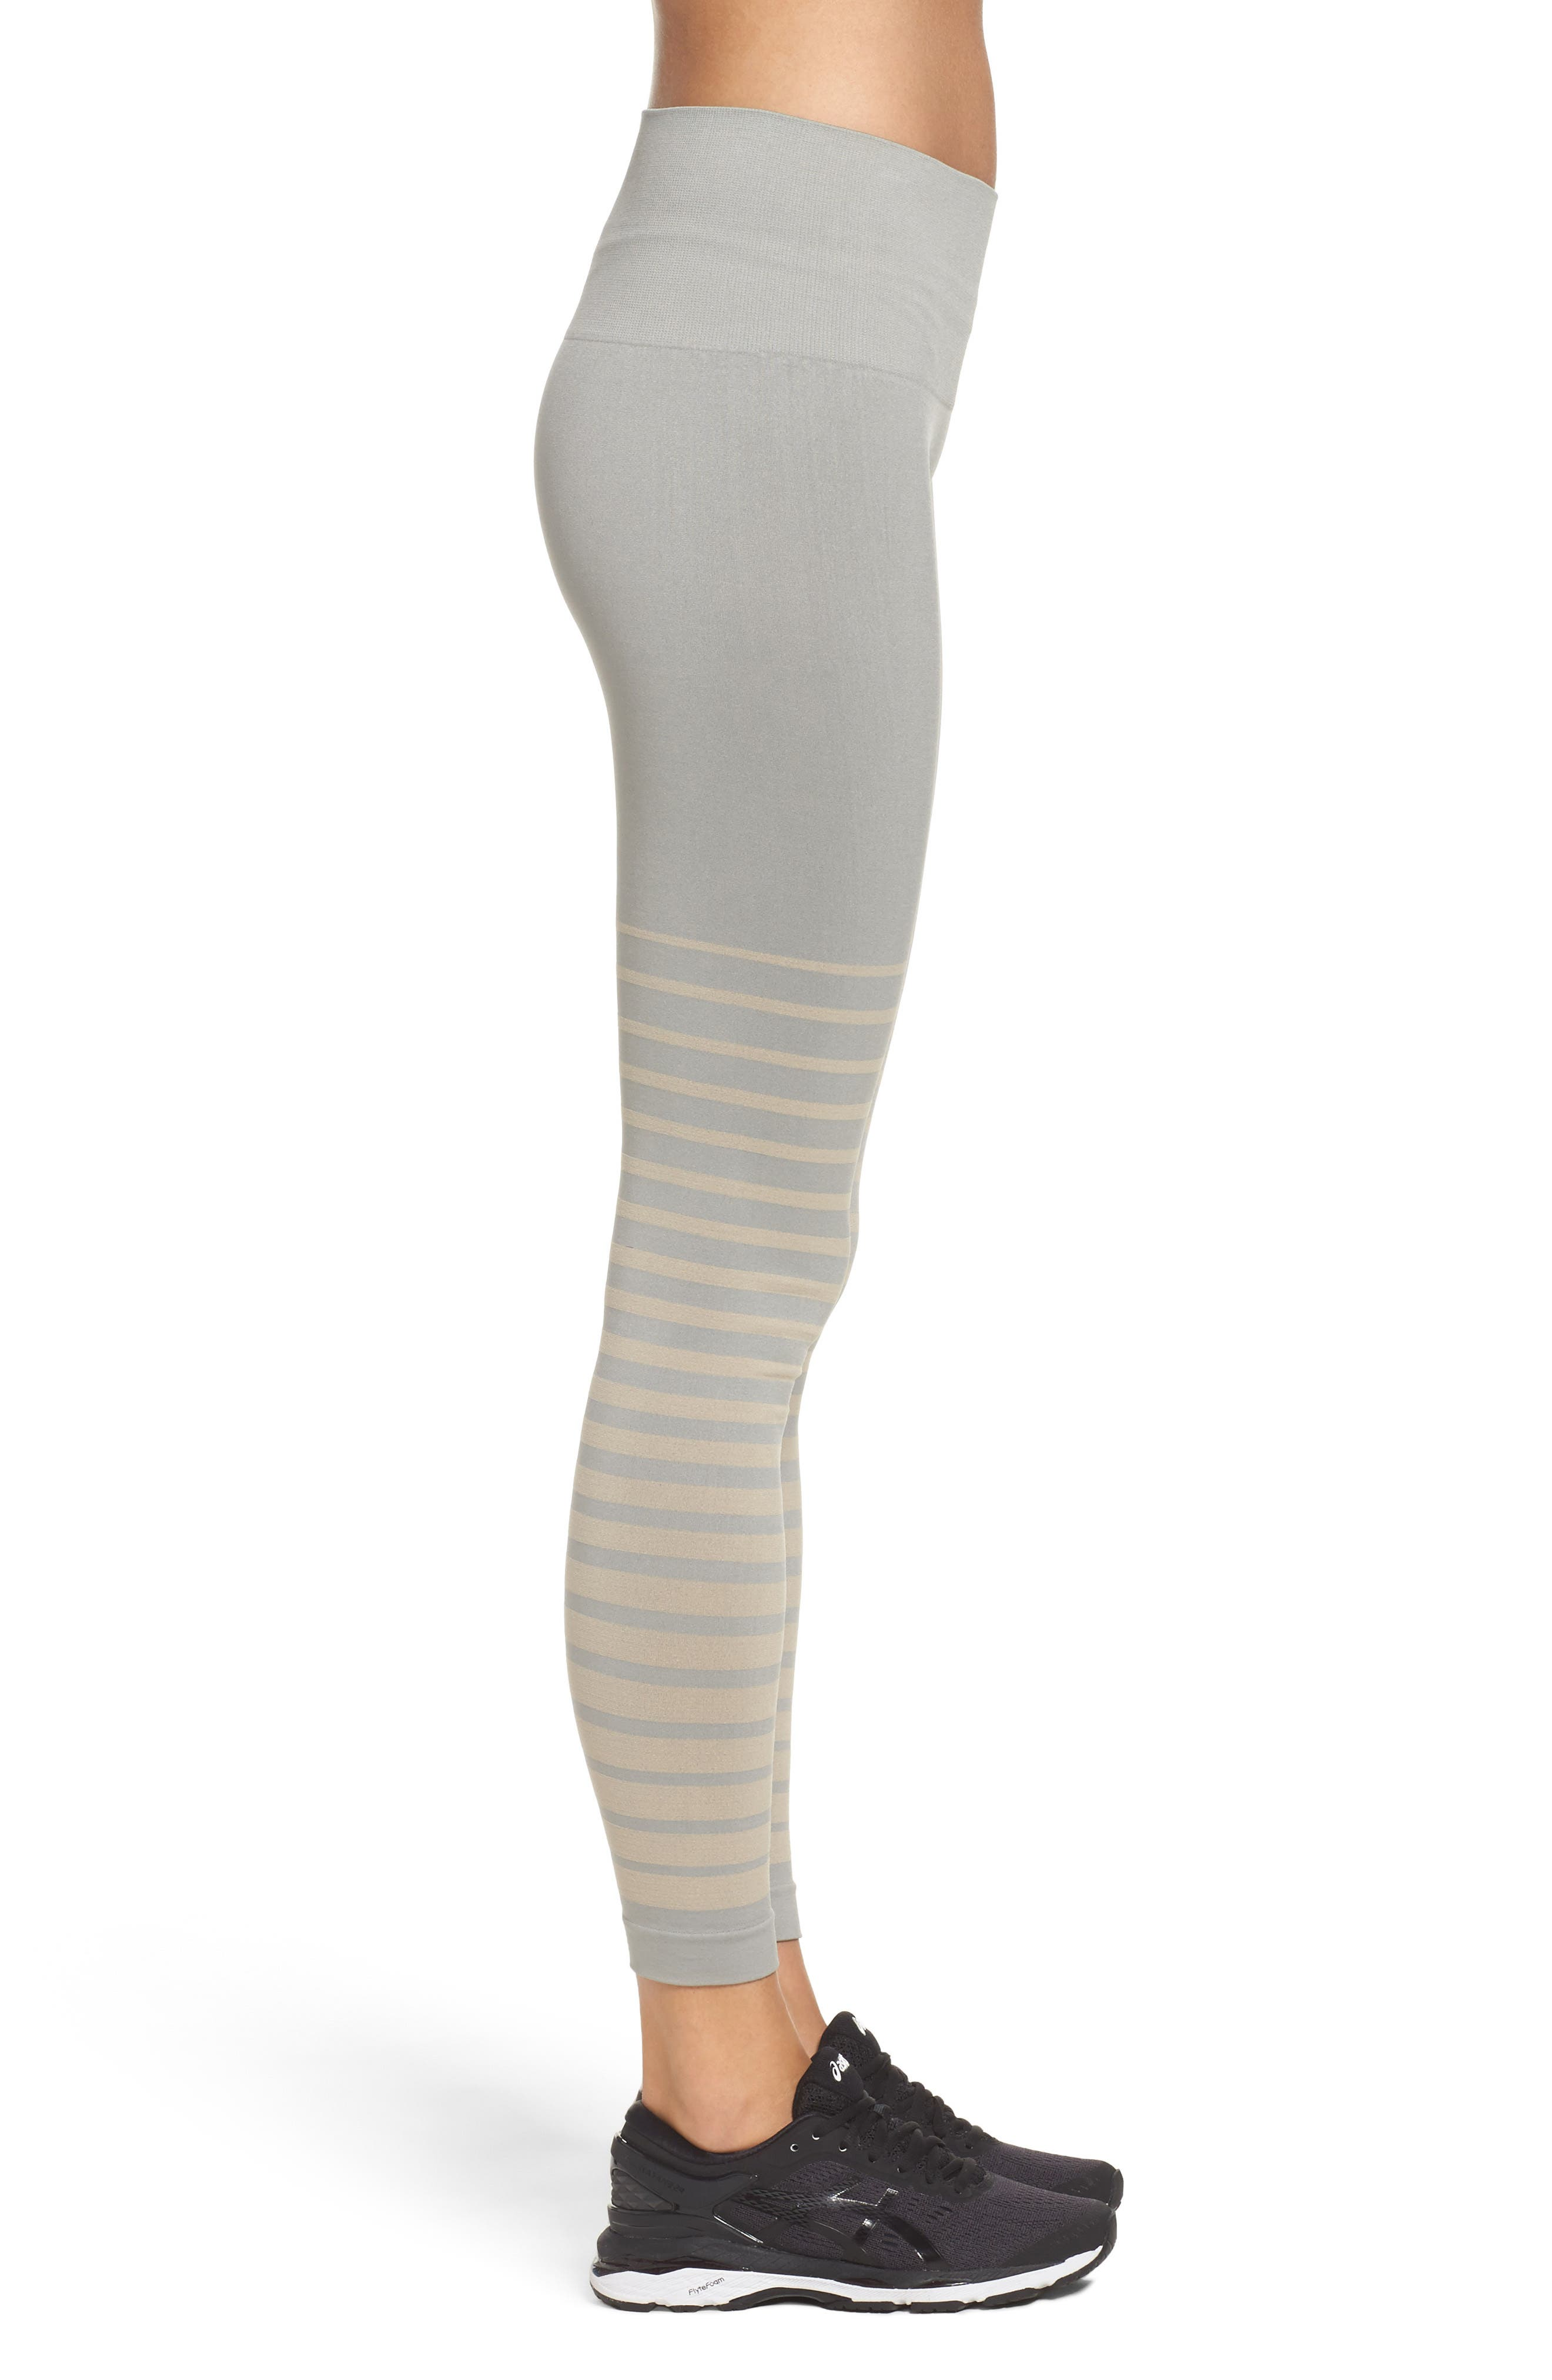 Front Runner High Waist Leggings,                             Alternate thumbnail 3, color,                             Wild Dove And Pink Tint